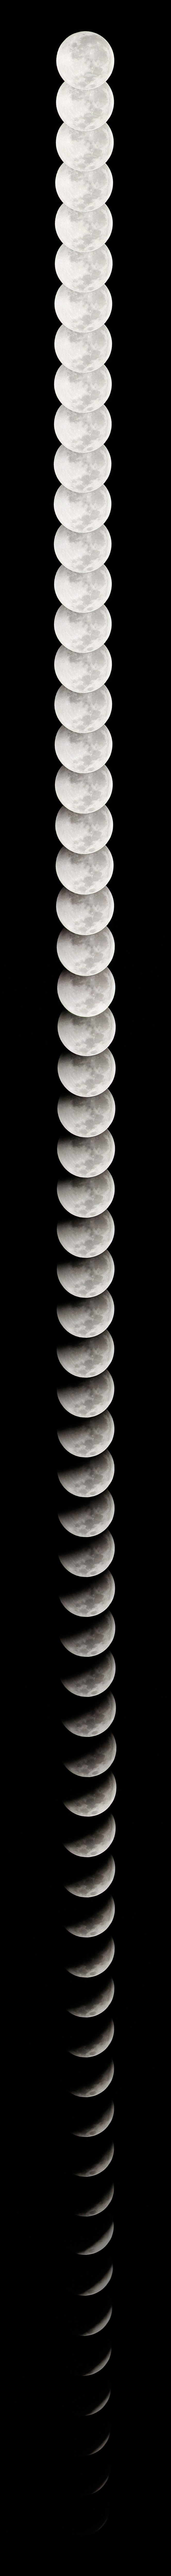 tall eclipse || Canon5D2/EF200f2.8L | 1/125s | f9 | ISO100